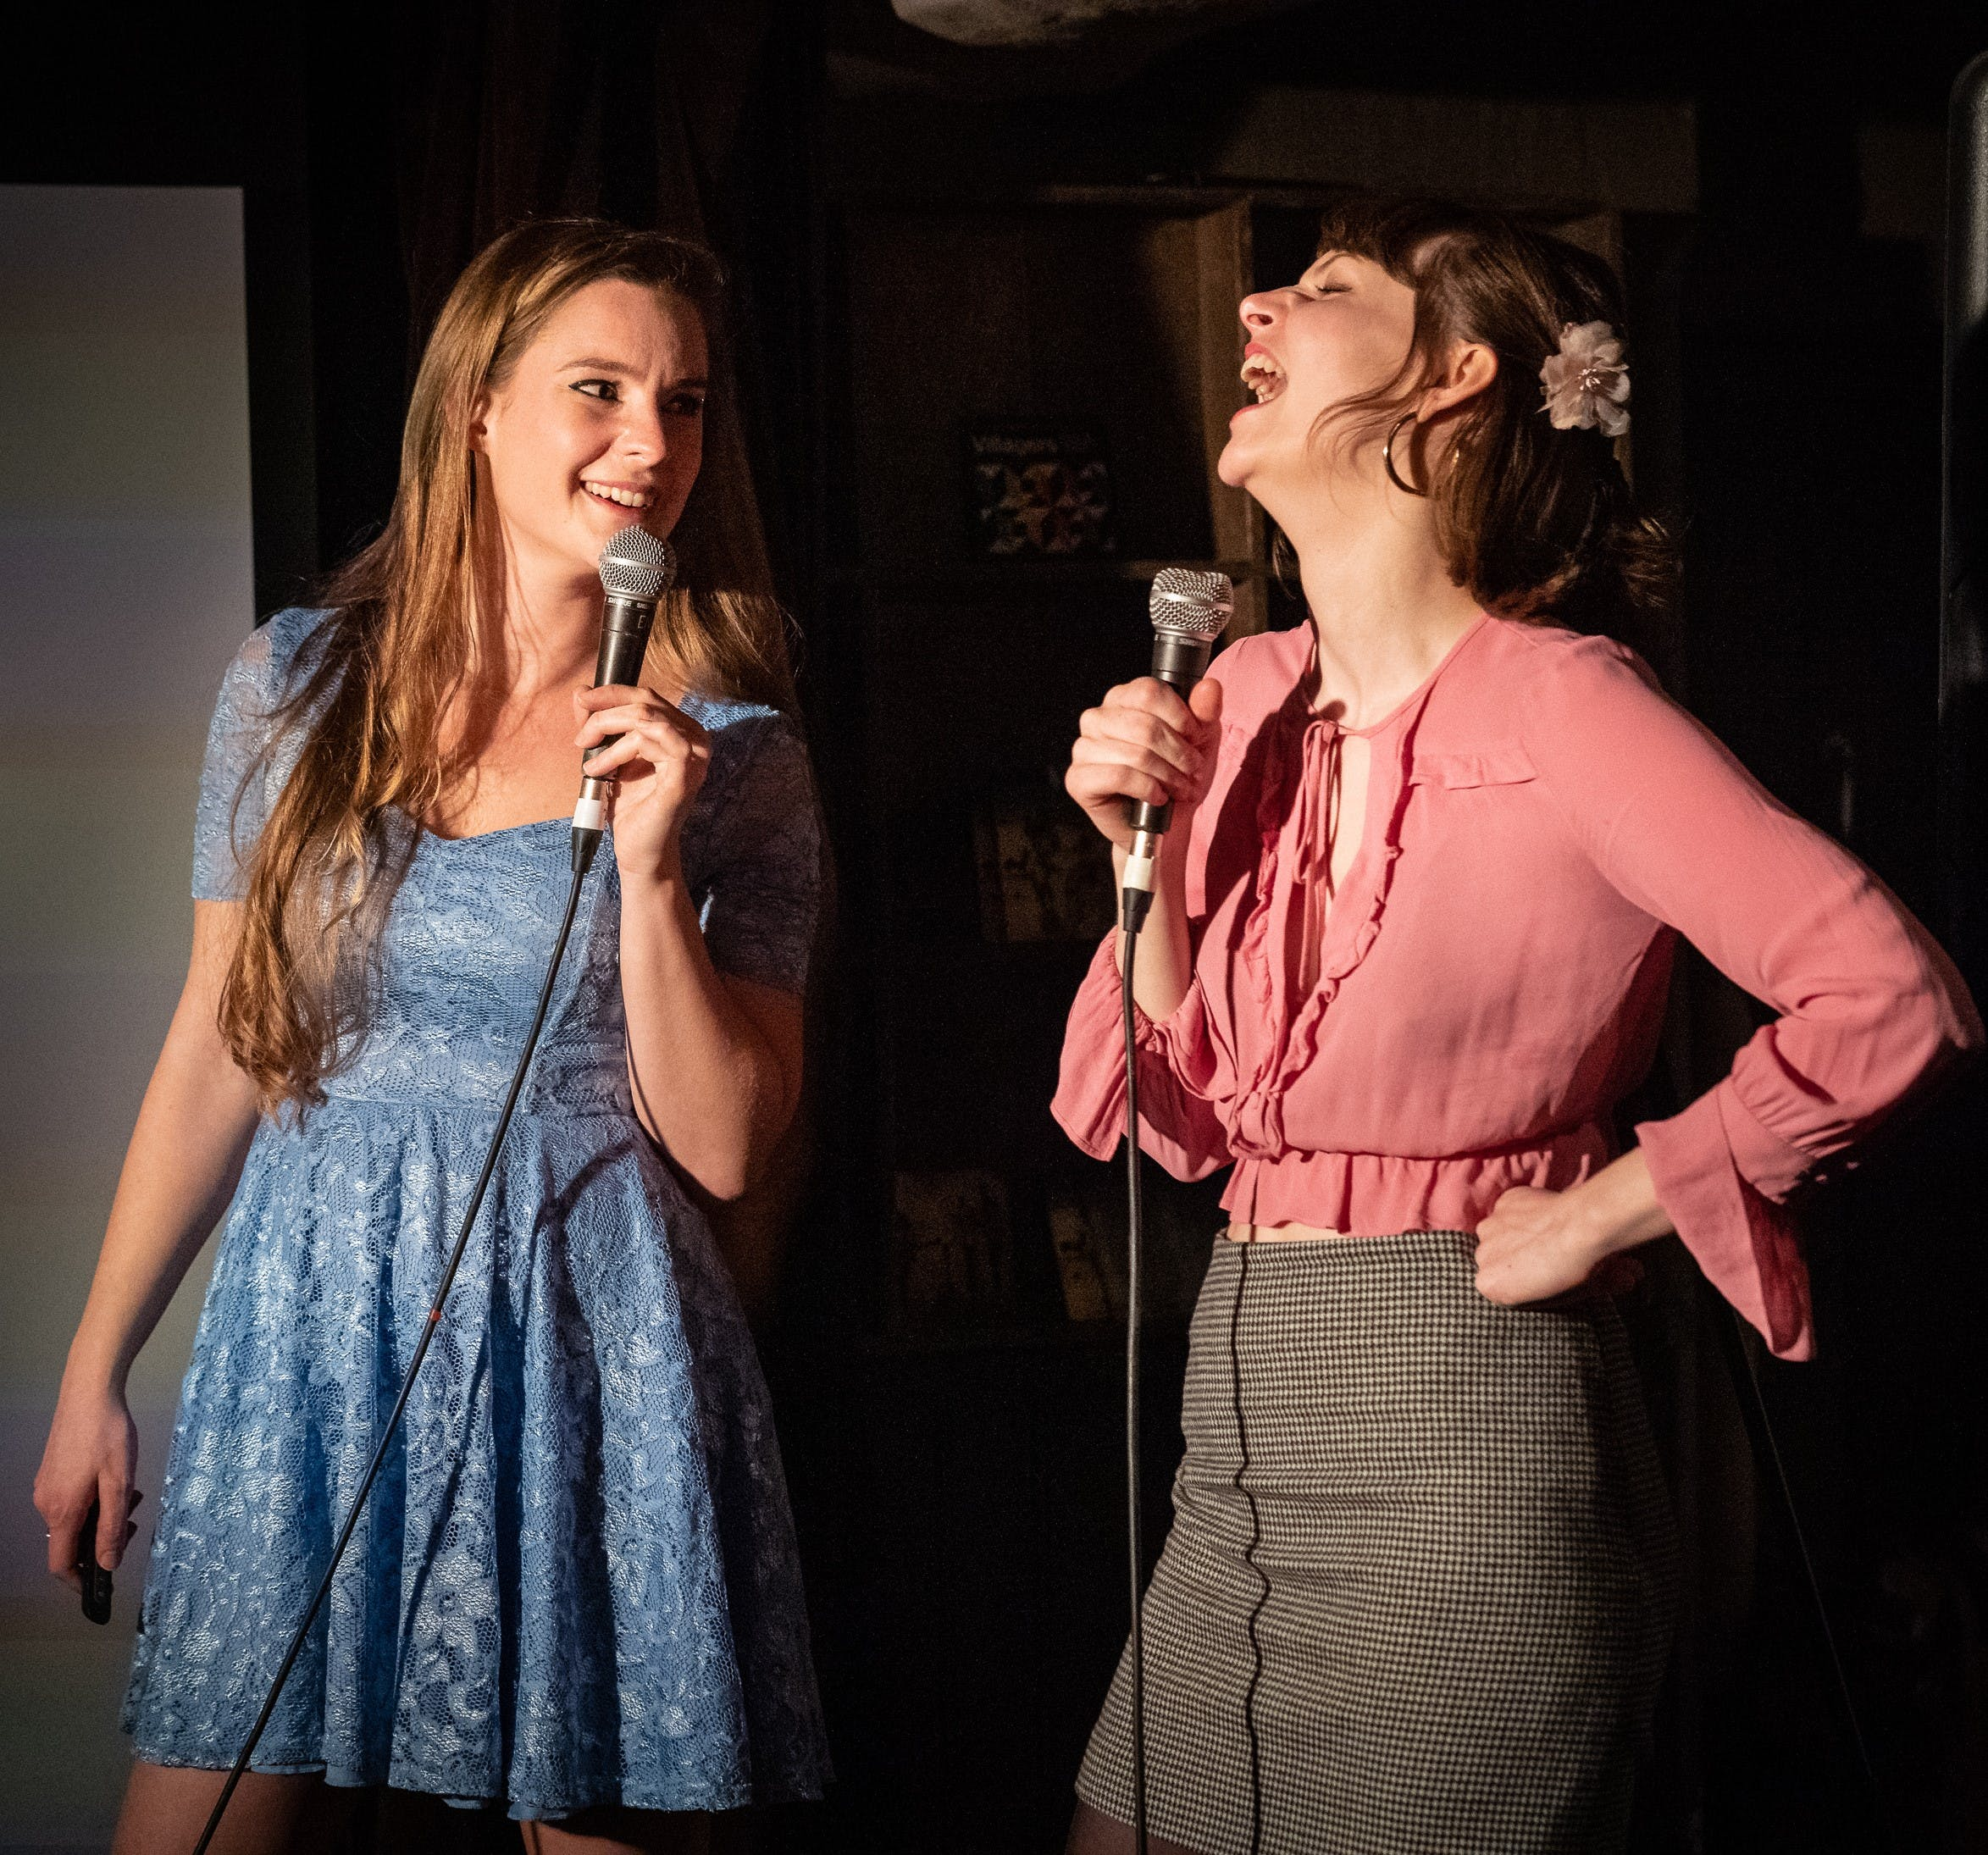 Scientists Belle Taylor and Charlotte Mykura doing a stand-up comedy show.